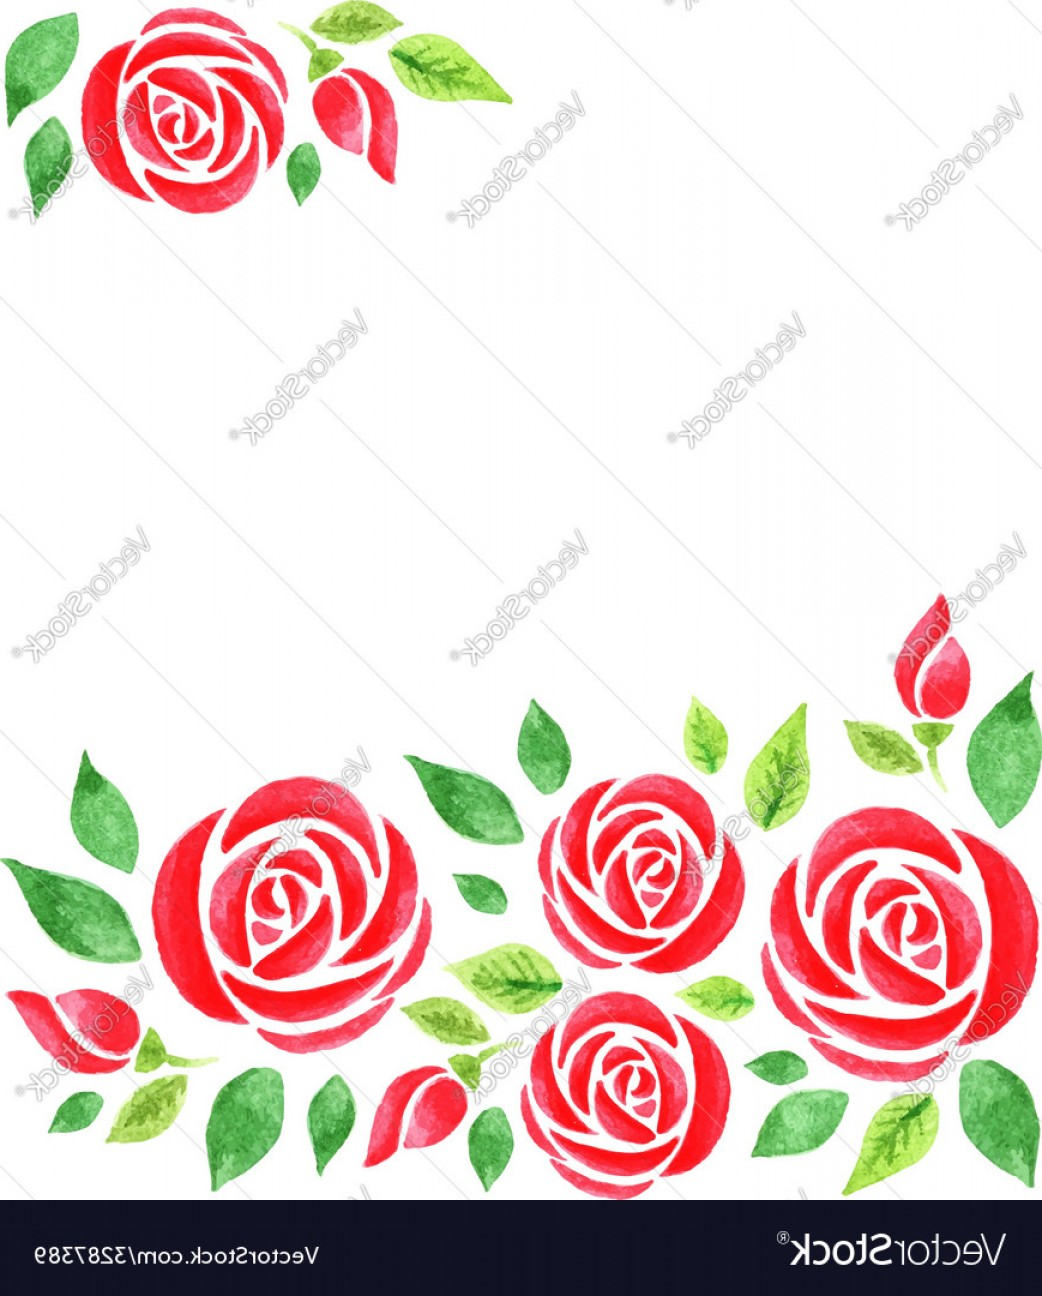 Watercolor Floral Background Vector: Watercolor Floral Background With Red Roses Vector